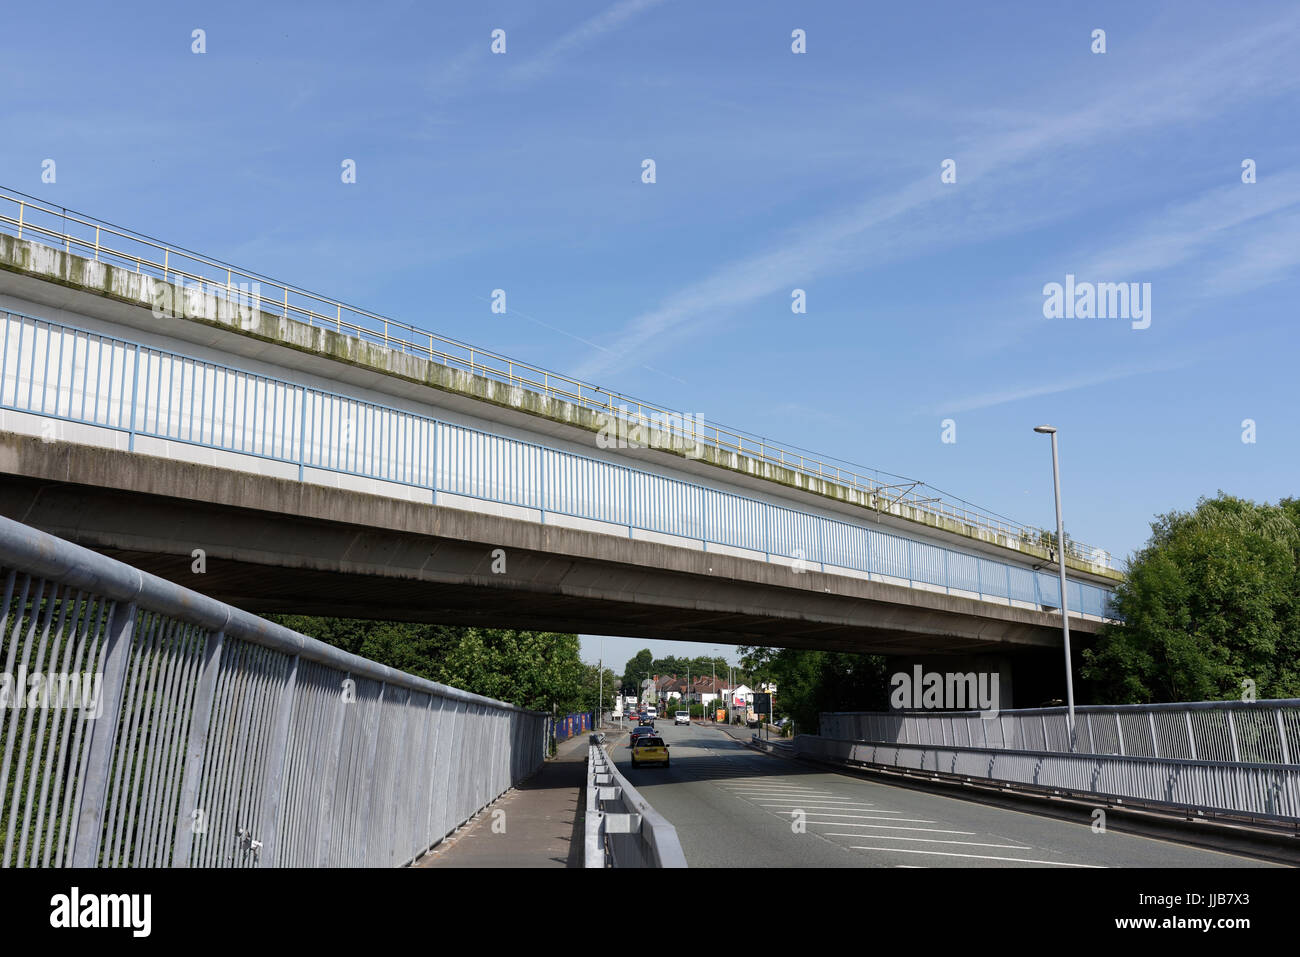 Manchester Metrolink bridge over the A56 road in bury lancashire Stock Photo